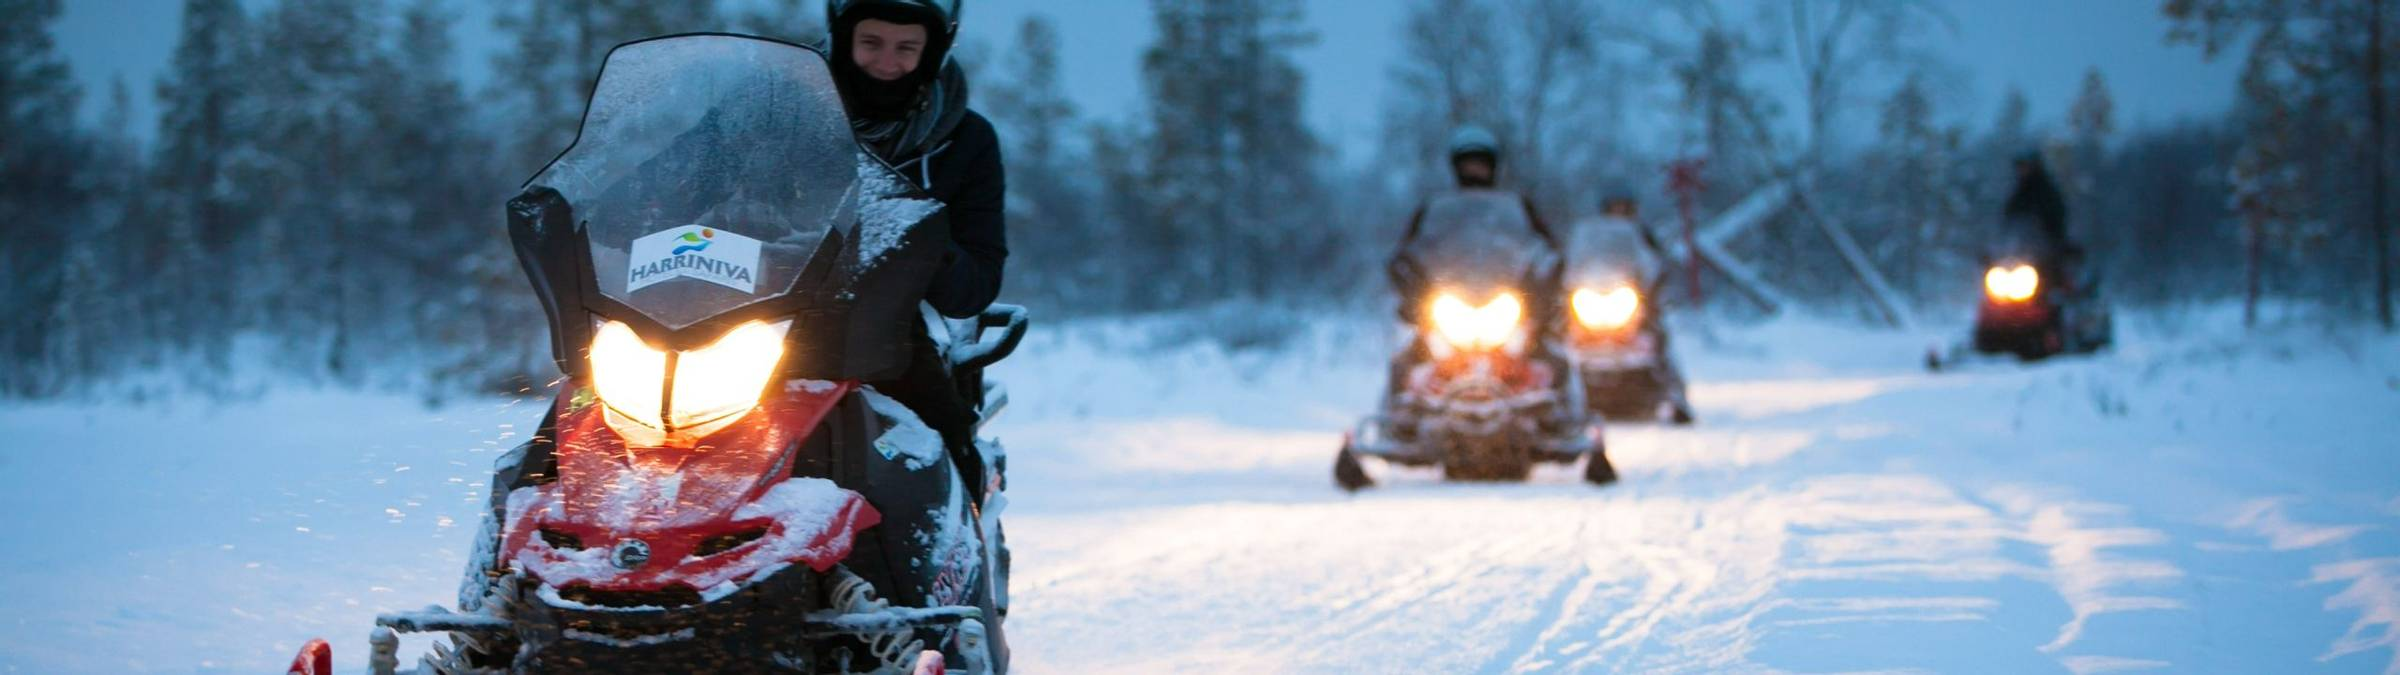 harriniva_snowmobile_large (8 of 9).jpg